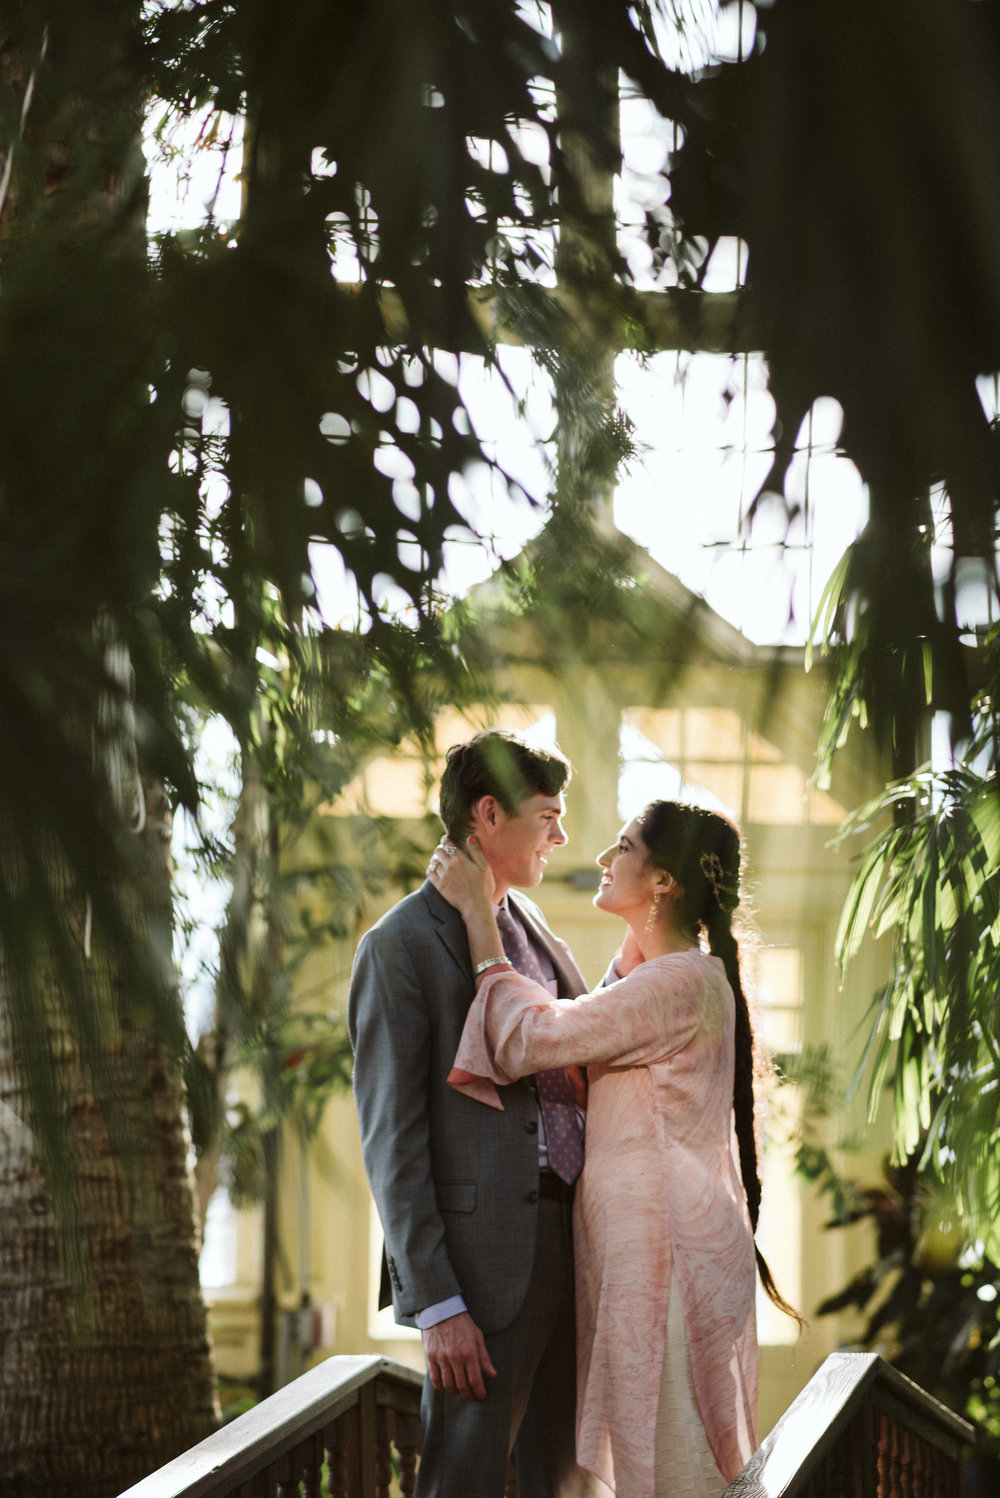 Elopement, Baltimore, Rawlings Conservatory, Greenhouse, Maryland Wedding Photographer, Indian American, Nature, Romantic, Garden, Pink Sari, Braids, Bride and Groom Hugging, Candid Photo